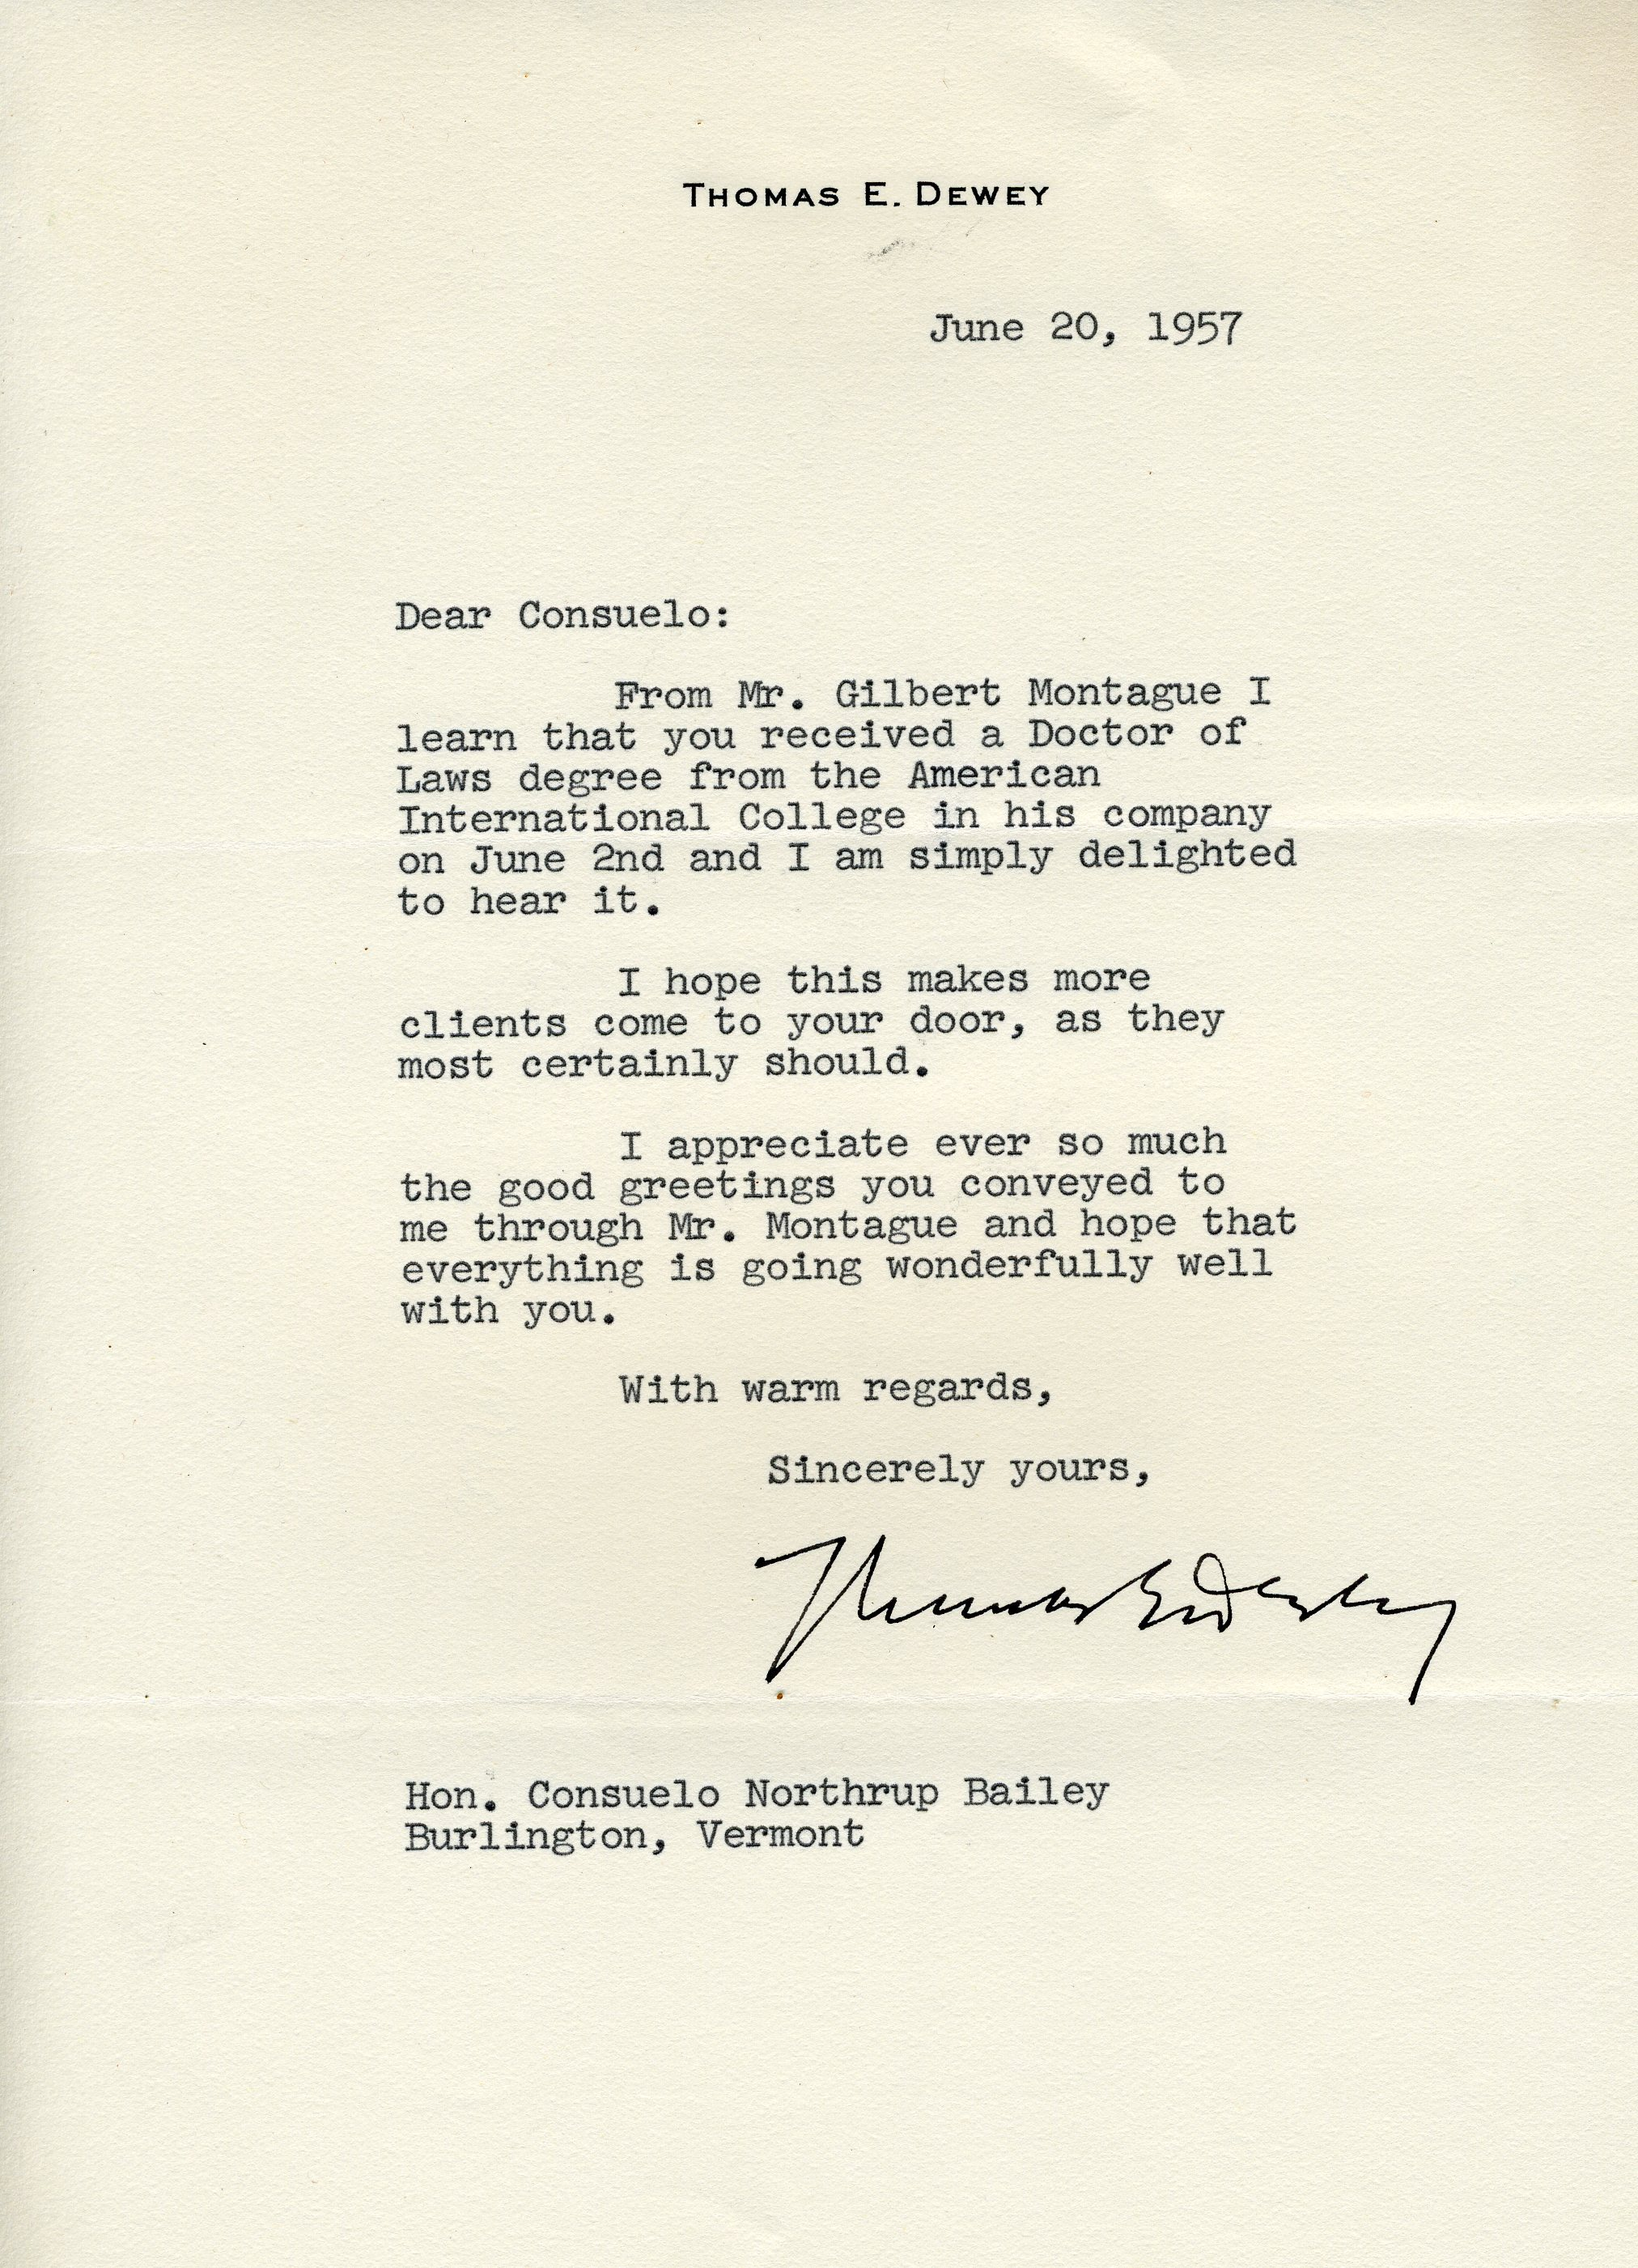 Letter from Thomas Dewey to Consuelo Northrop Bailey, 1957 June 20